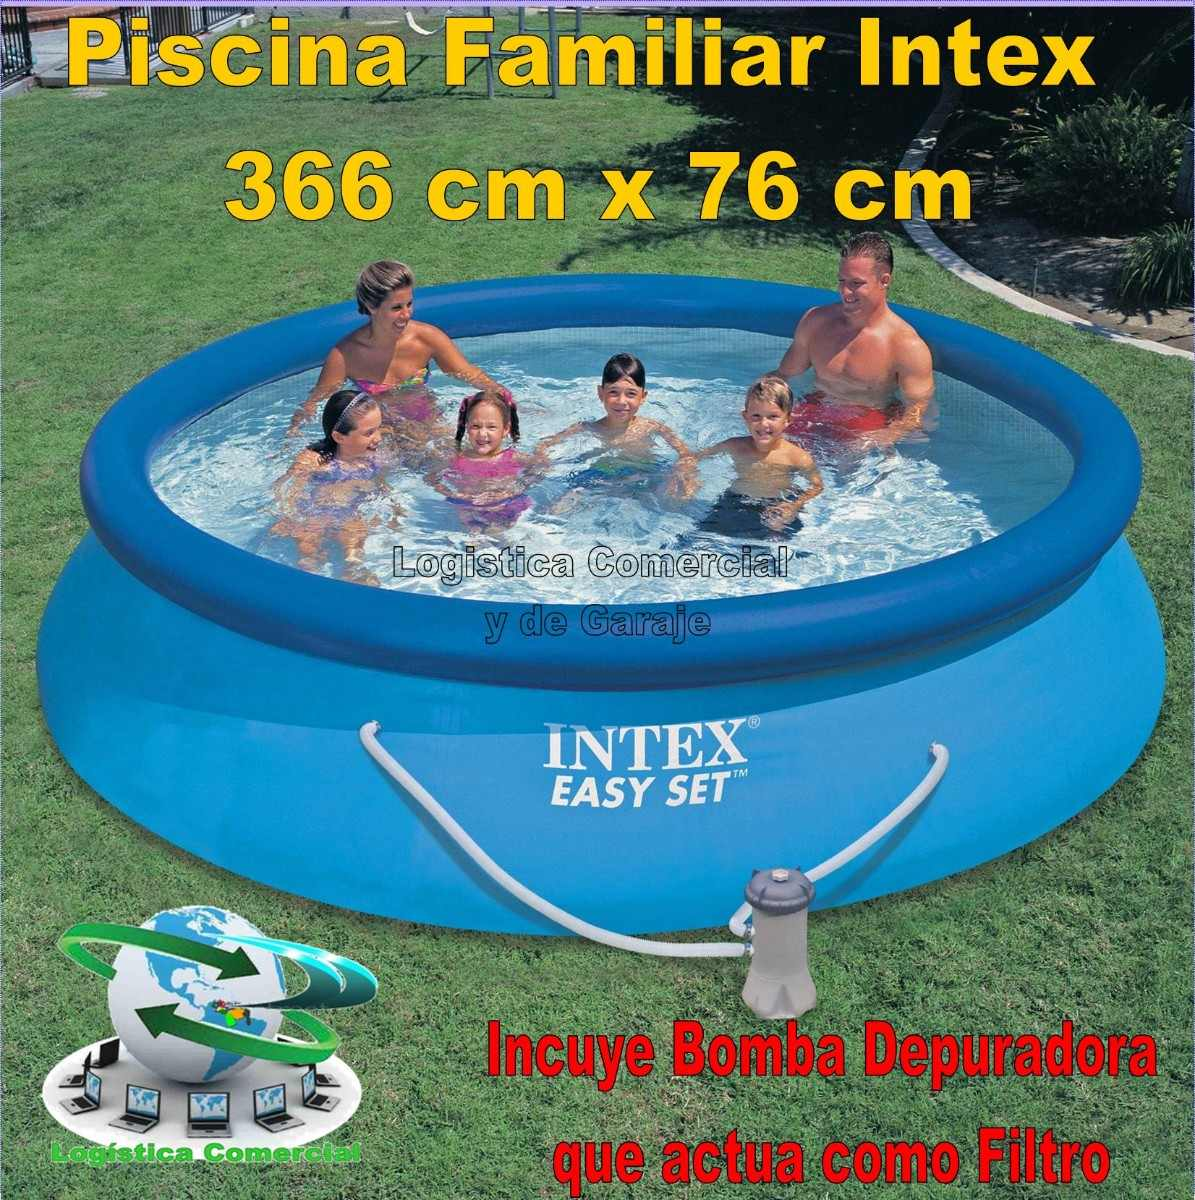 Piscina familiar inflable 366 x 76cm bomba filtrante for Piscina inflable intex